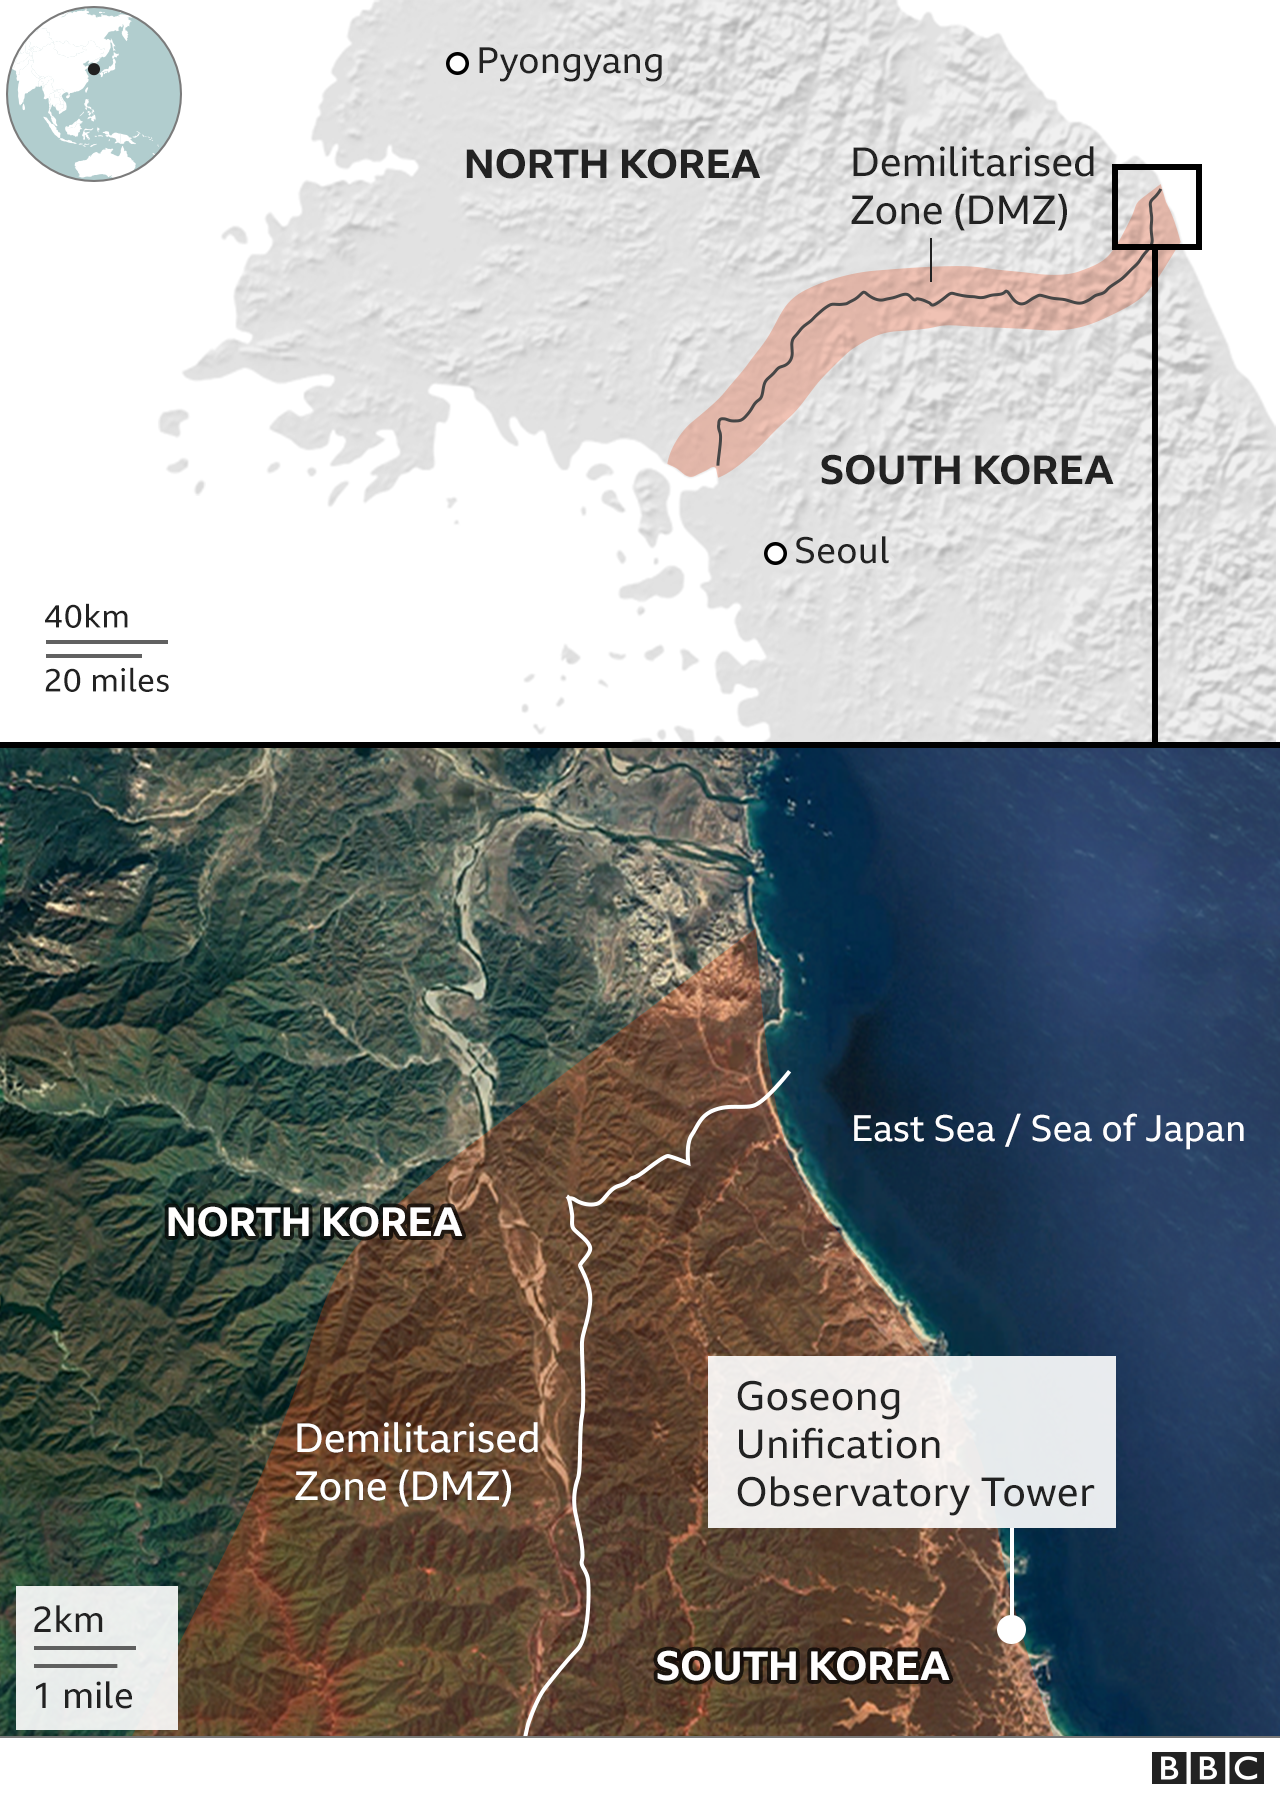 Map of the demilitarised zone between the two Koreas